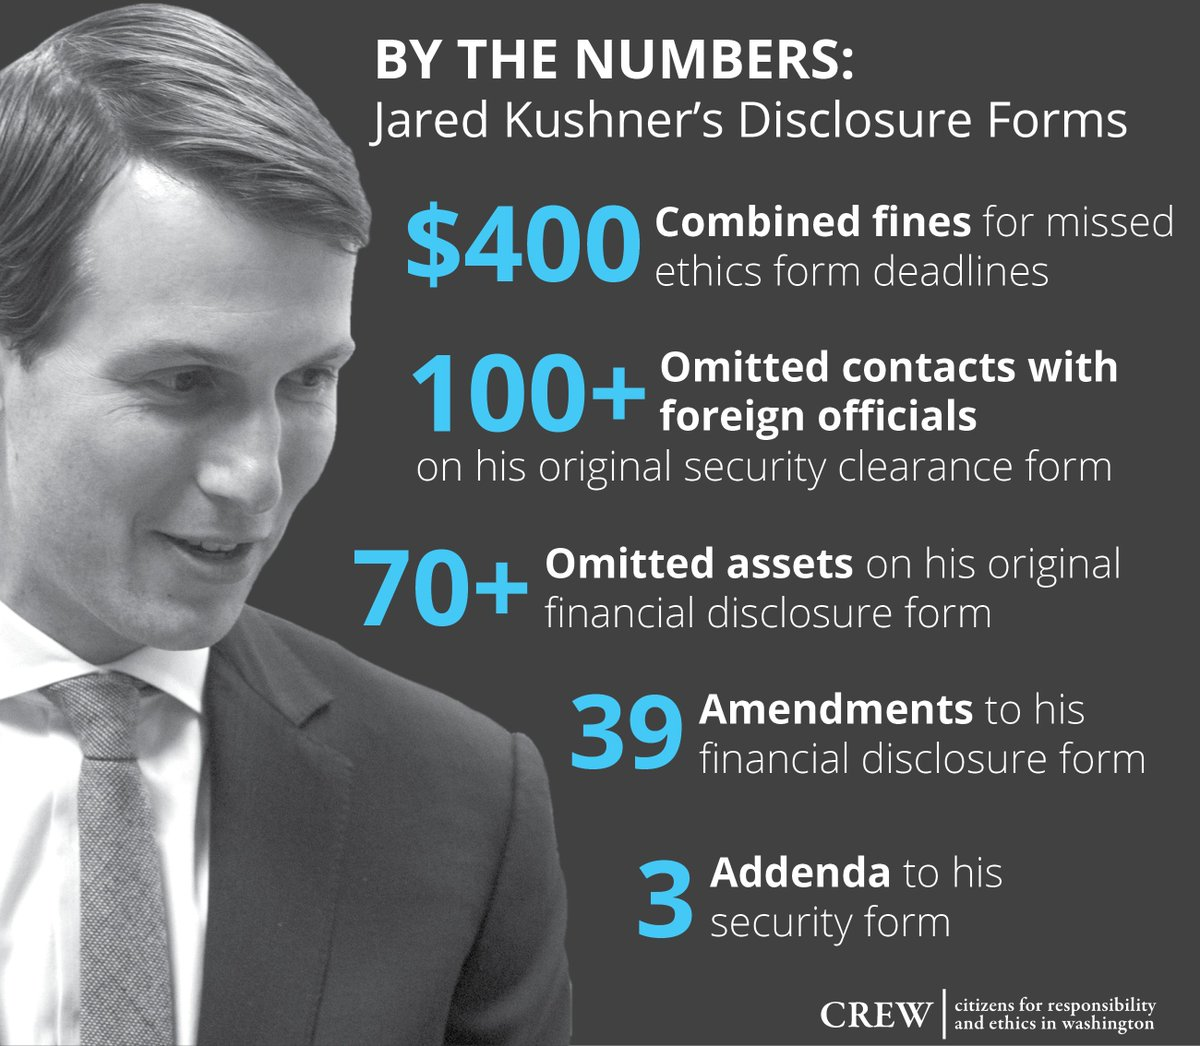 RT @CREWcrew: Jared Kushner, by the numbers: https://t.co/mNtib0MuTW